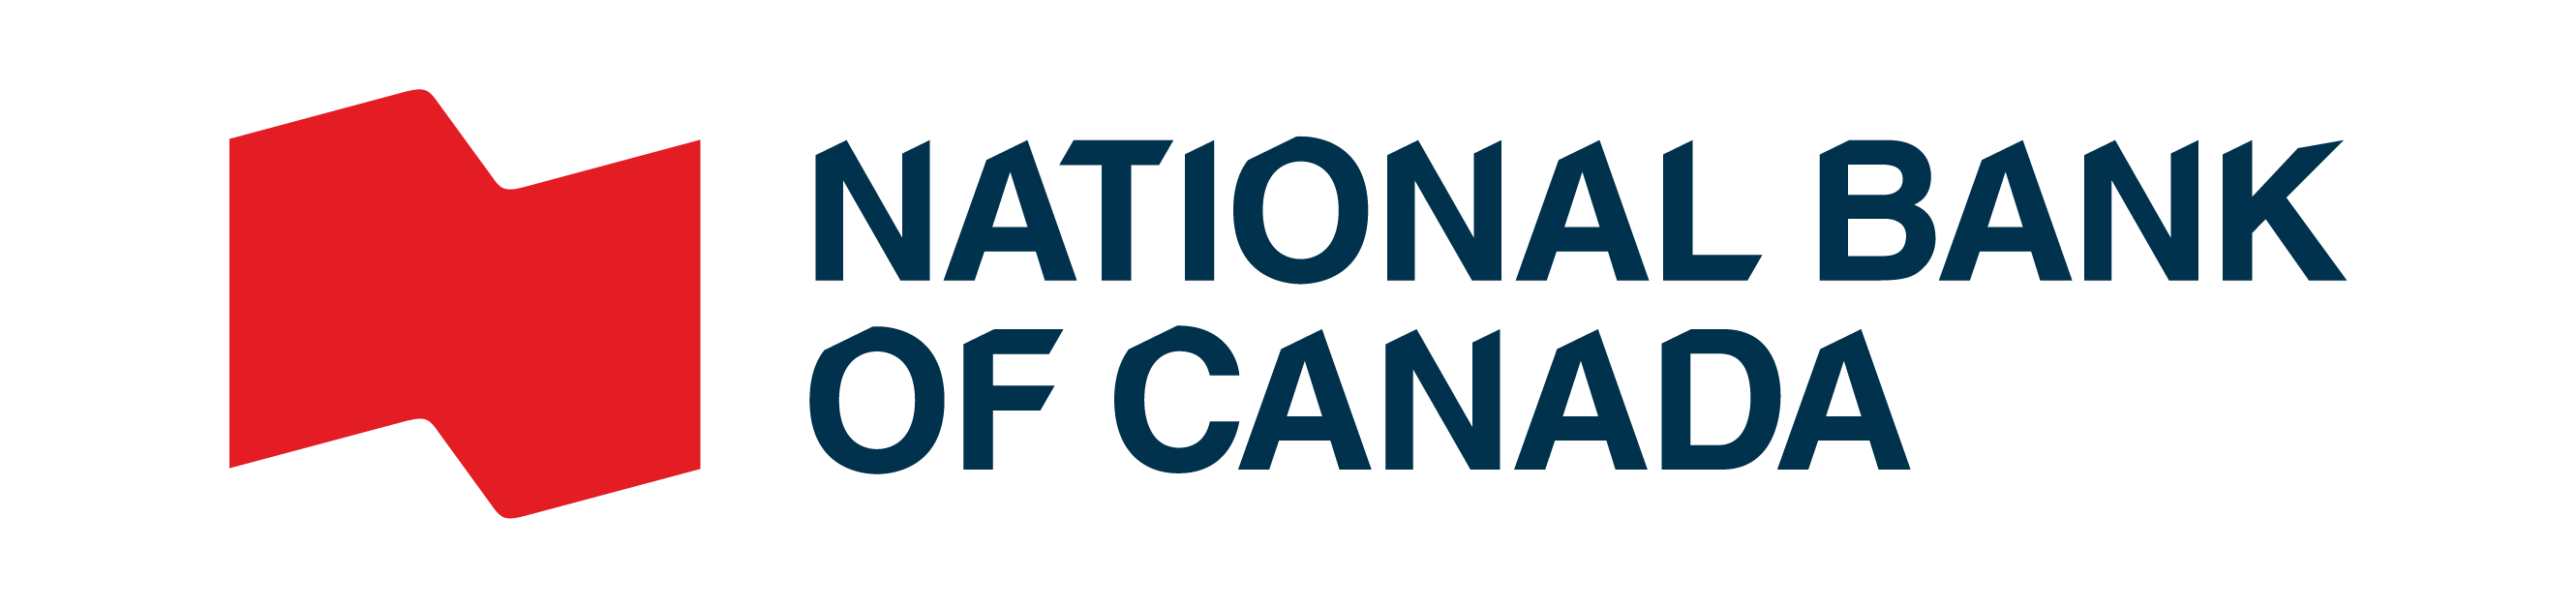 Logo der National Bank of Canada